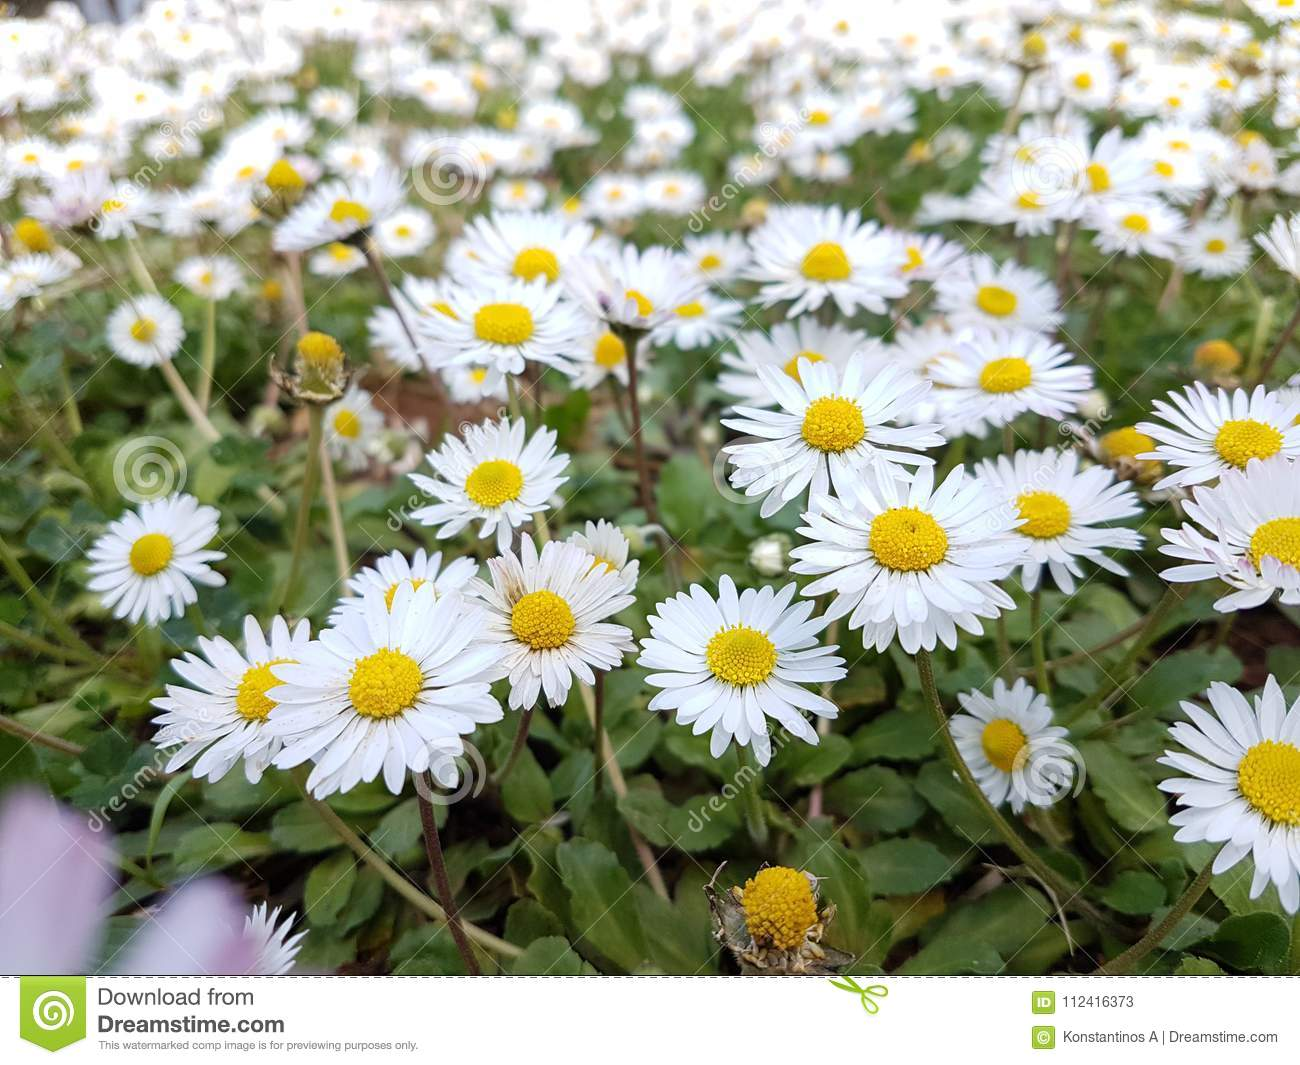 Daisies Flowers In Spring Green Lawn For Nature Stock Image Image